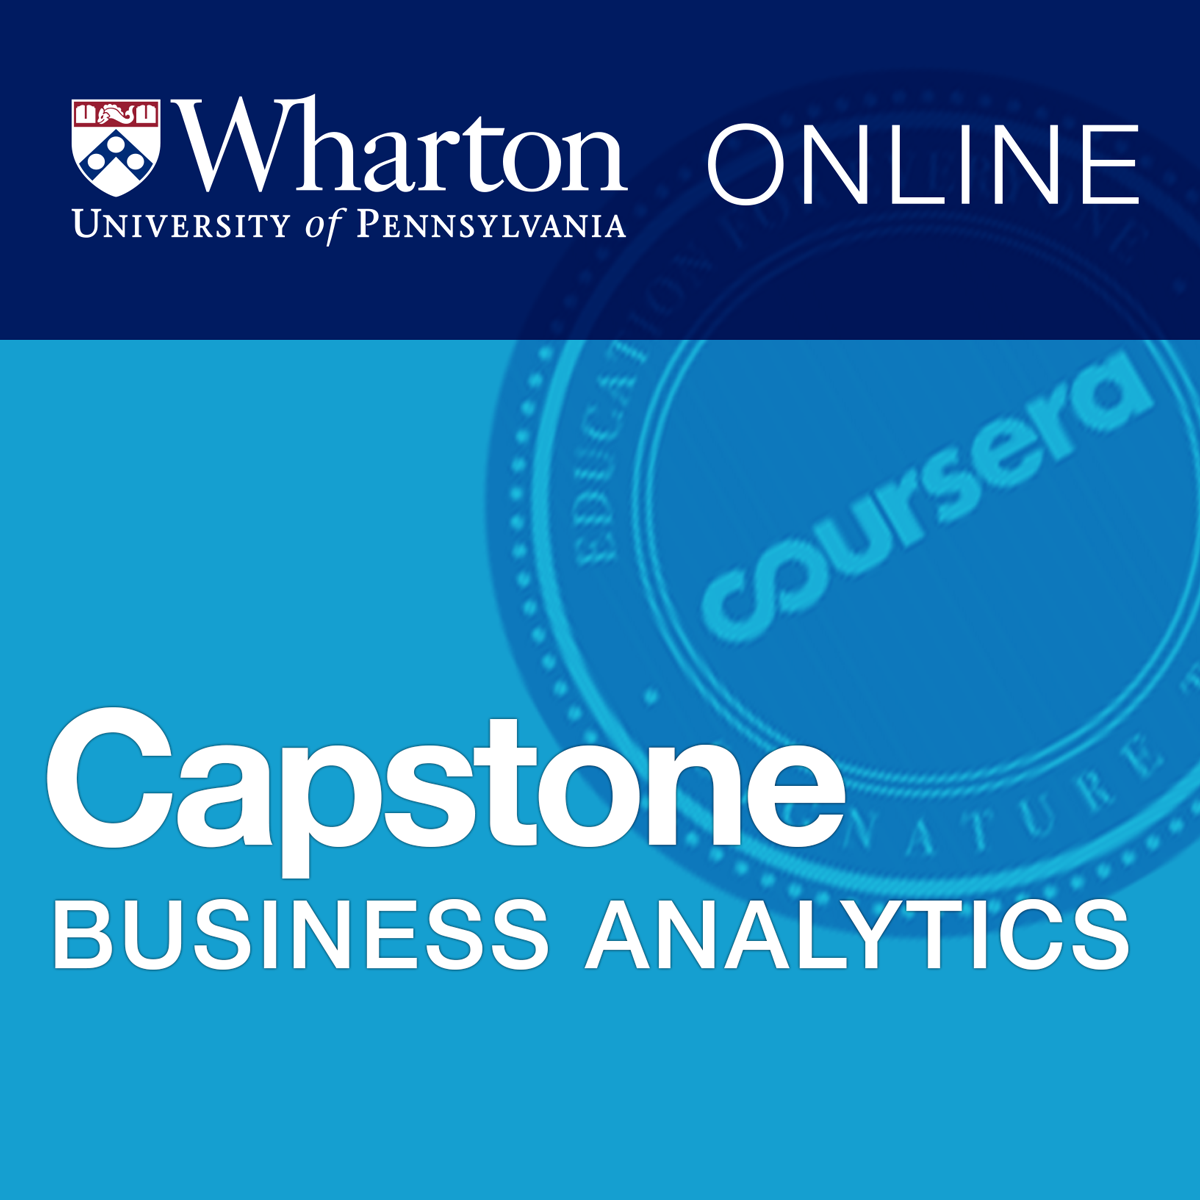 coursera capstone project quiz 2